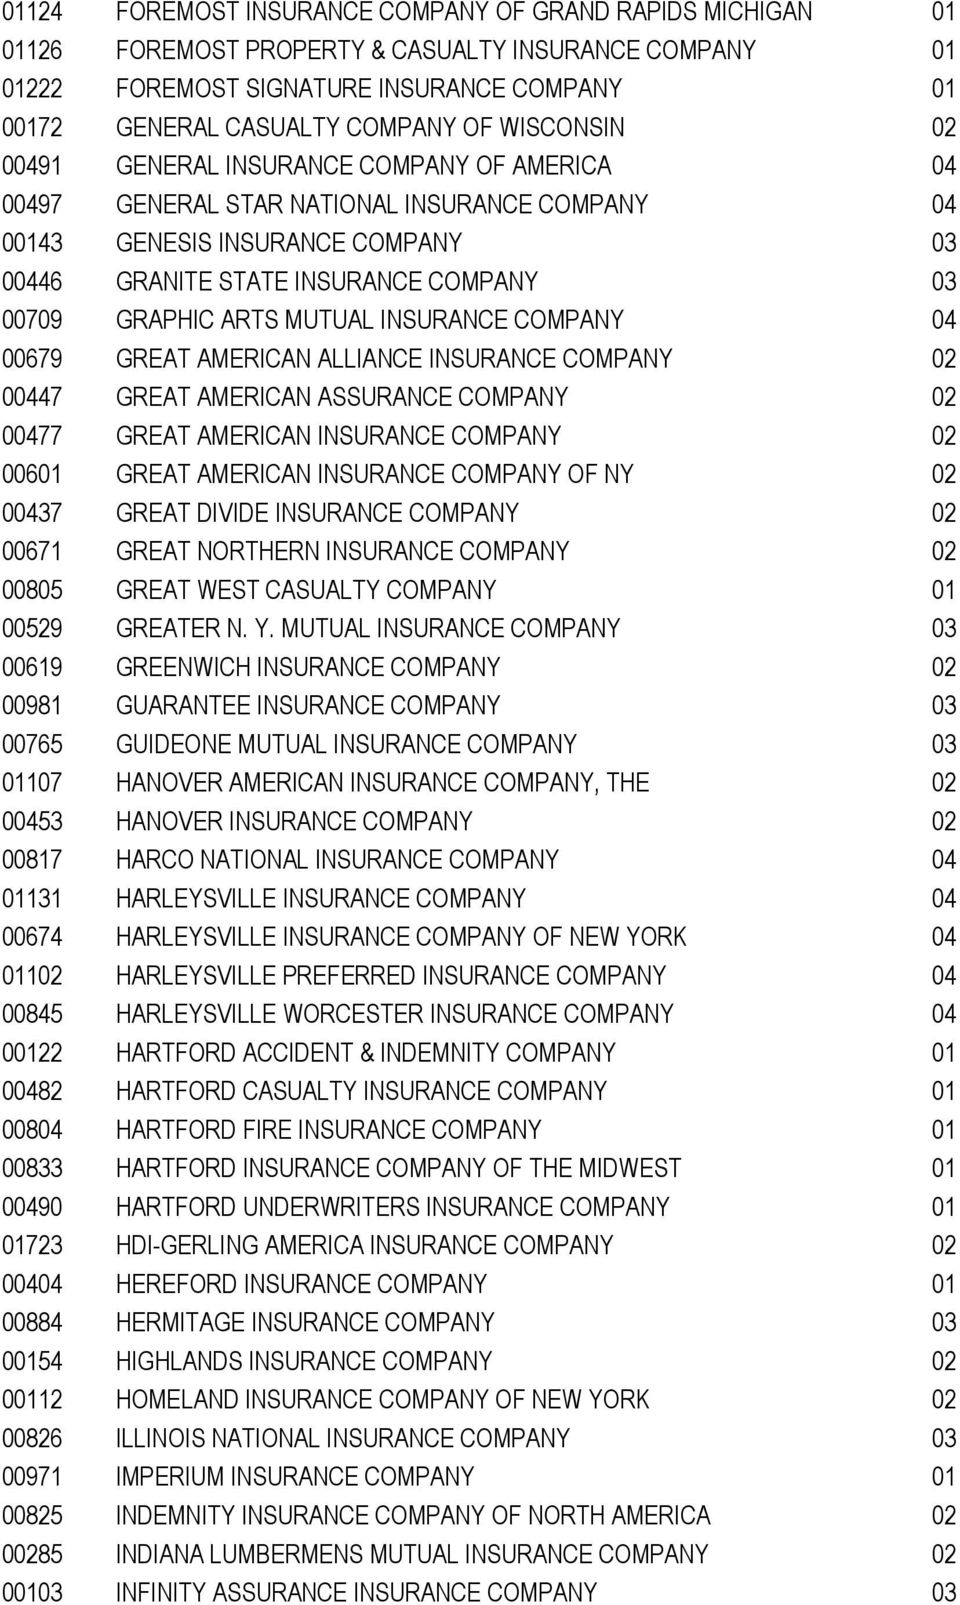 ARTS MUTUAL INSURANCE COMPANY 04 00679 GREAT AMERICAN ALLIANCE INSURANCE COMPANY 02 00447 GREAT AMERICAN ASSURANCE COMPANY 02 00477 GREAT AMERICAN INSURANCE COMPANY 02 00601 GREAT AMERICAN INSURANCE